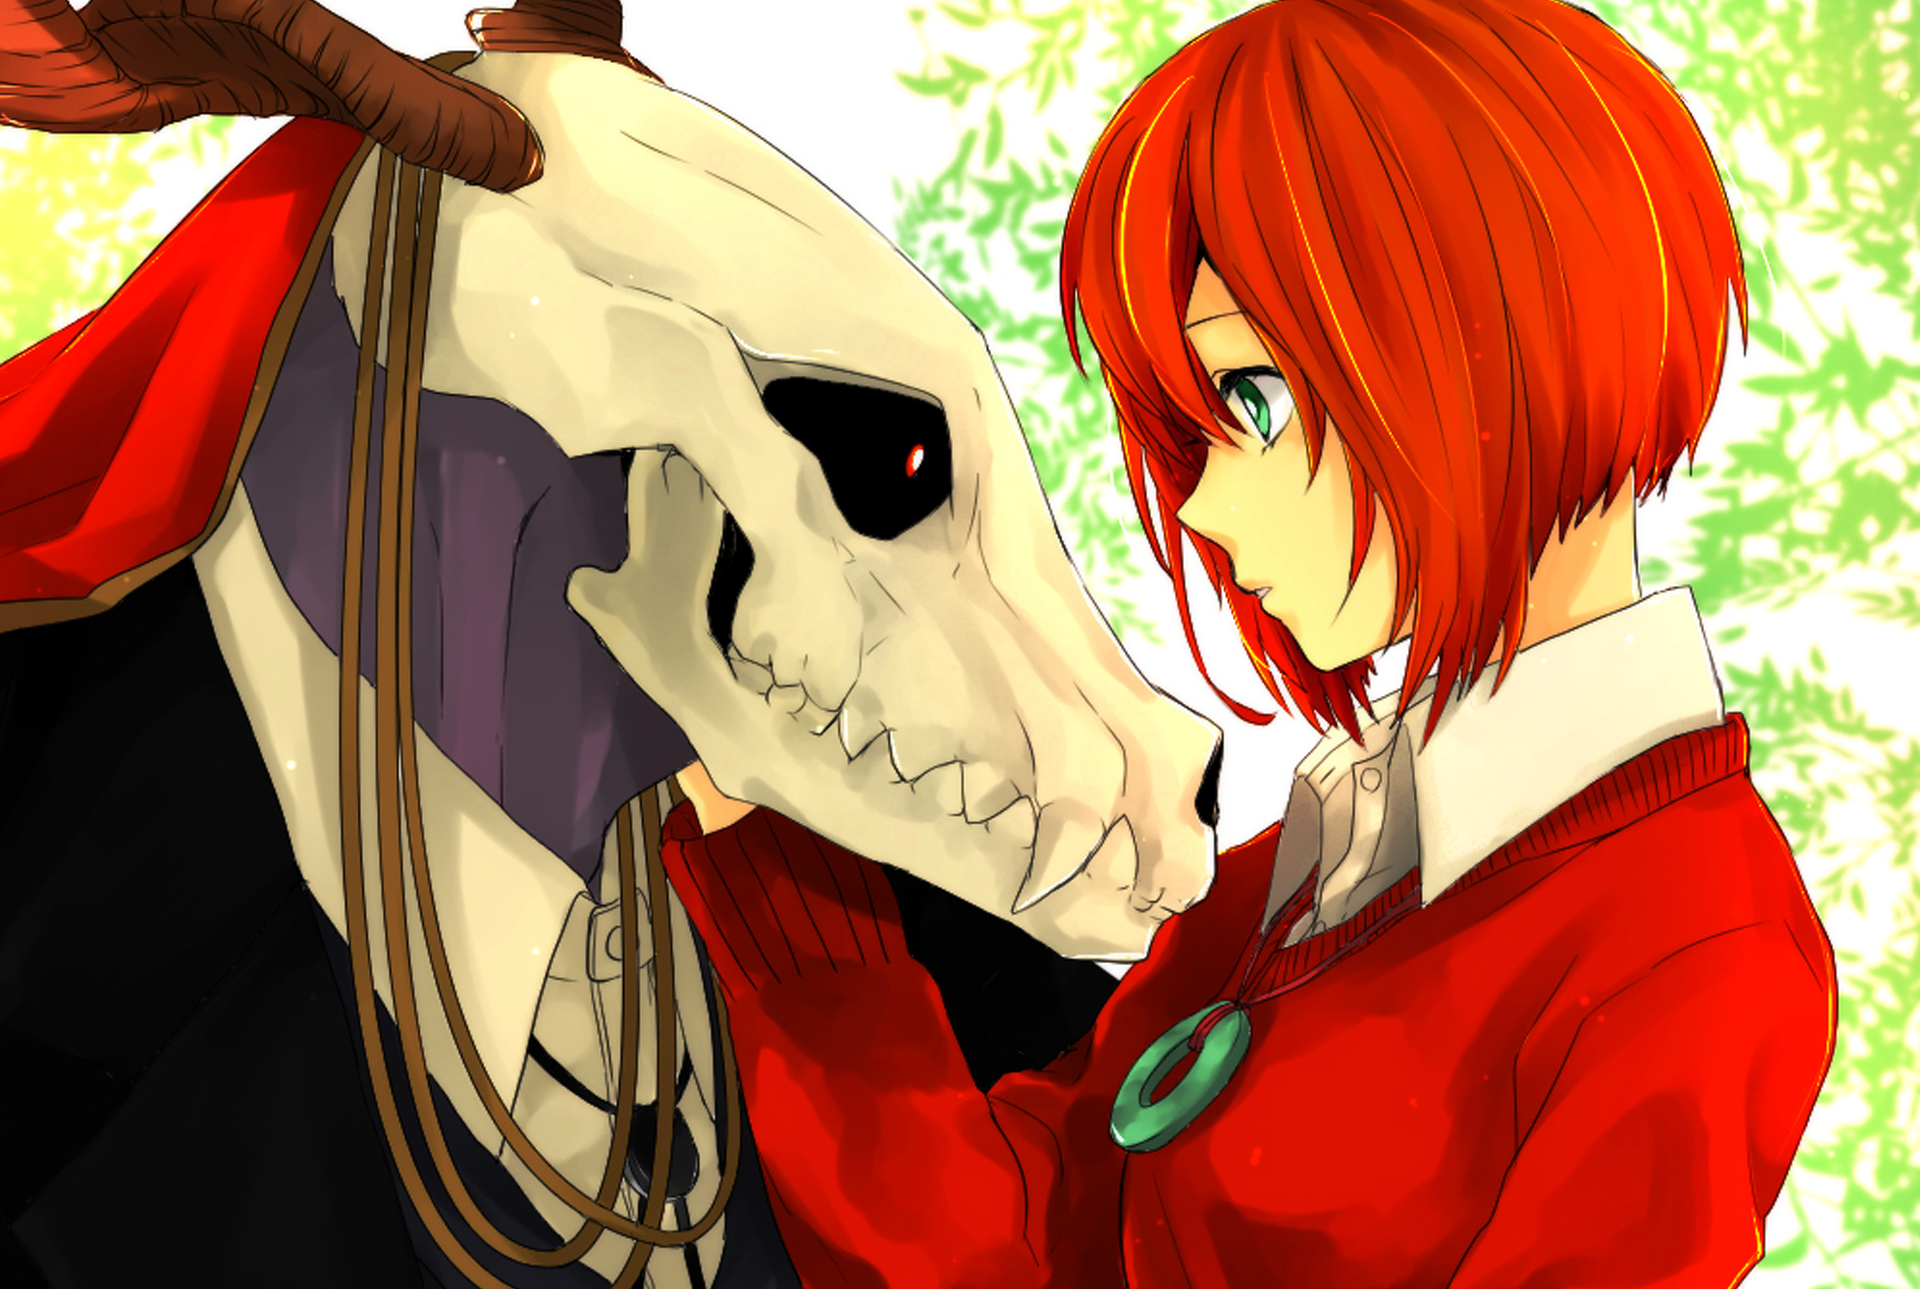 The Ancient Magus Bride Full HD Bakgrund and Bakgrund 1920x1289